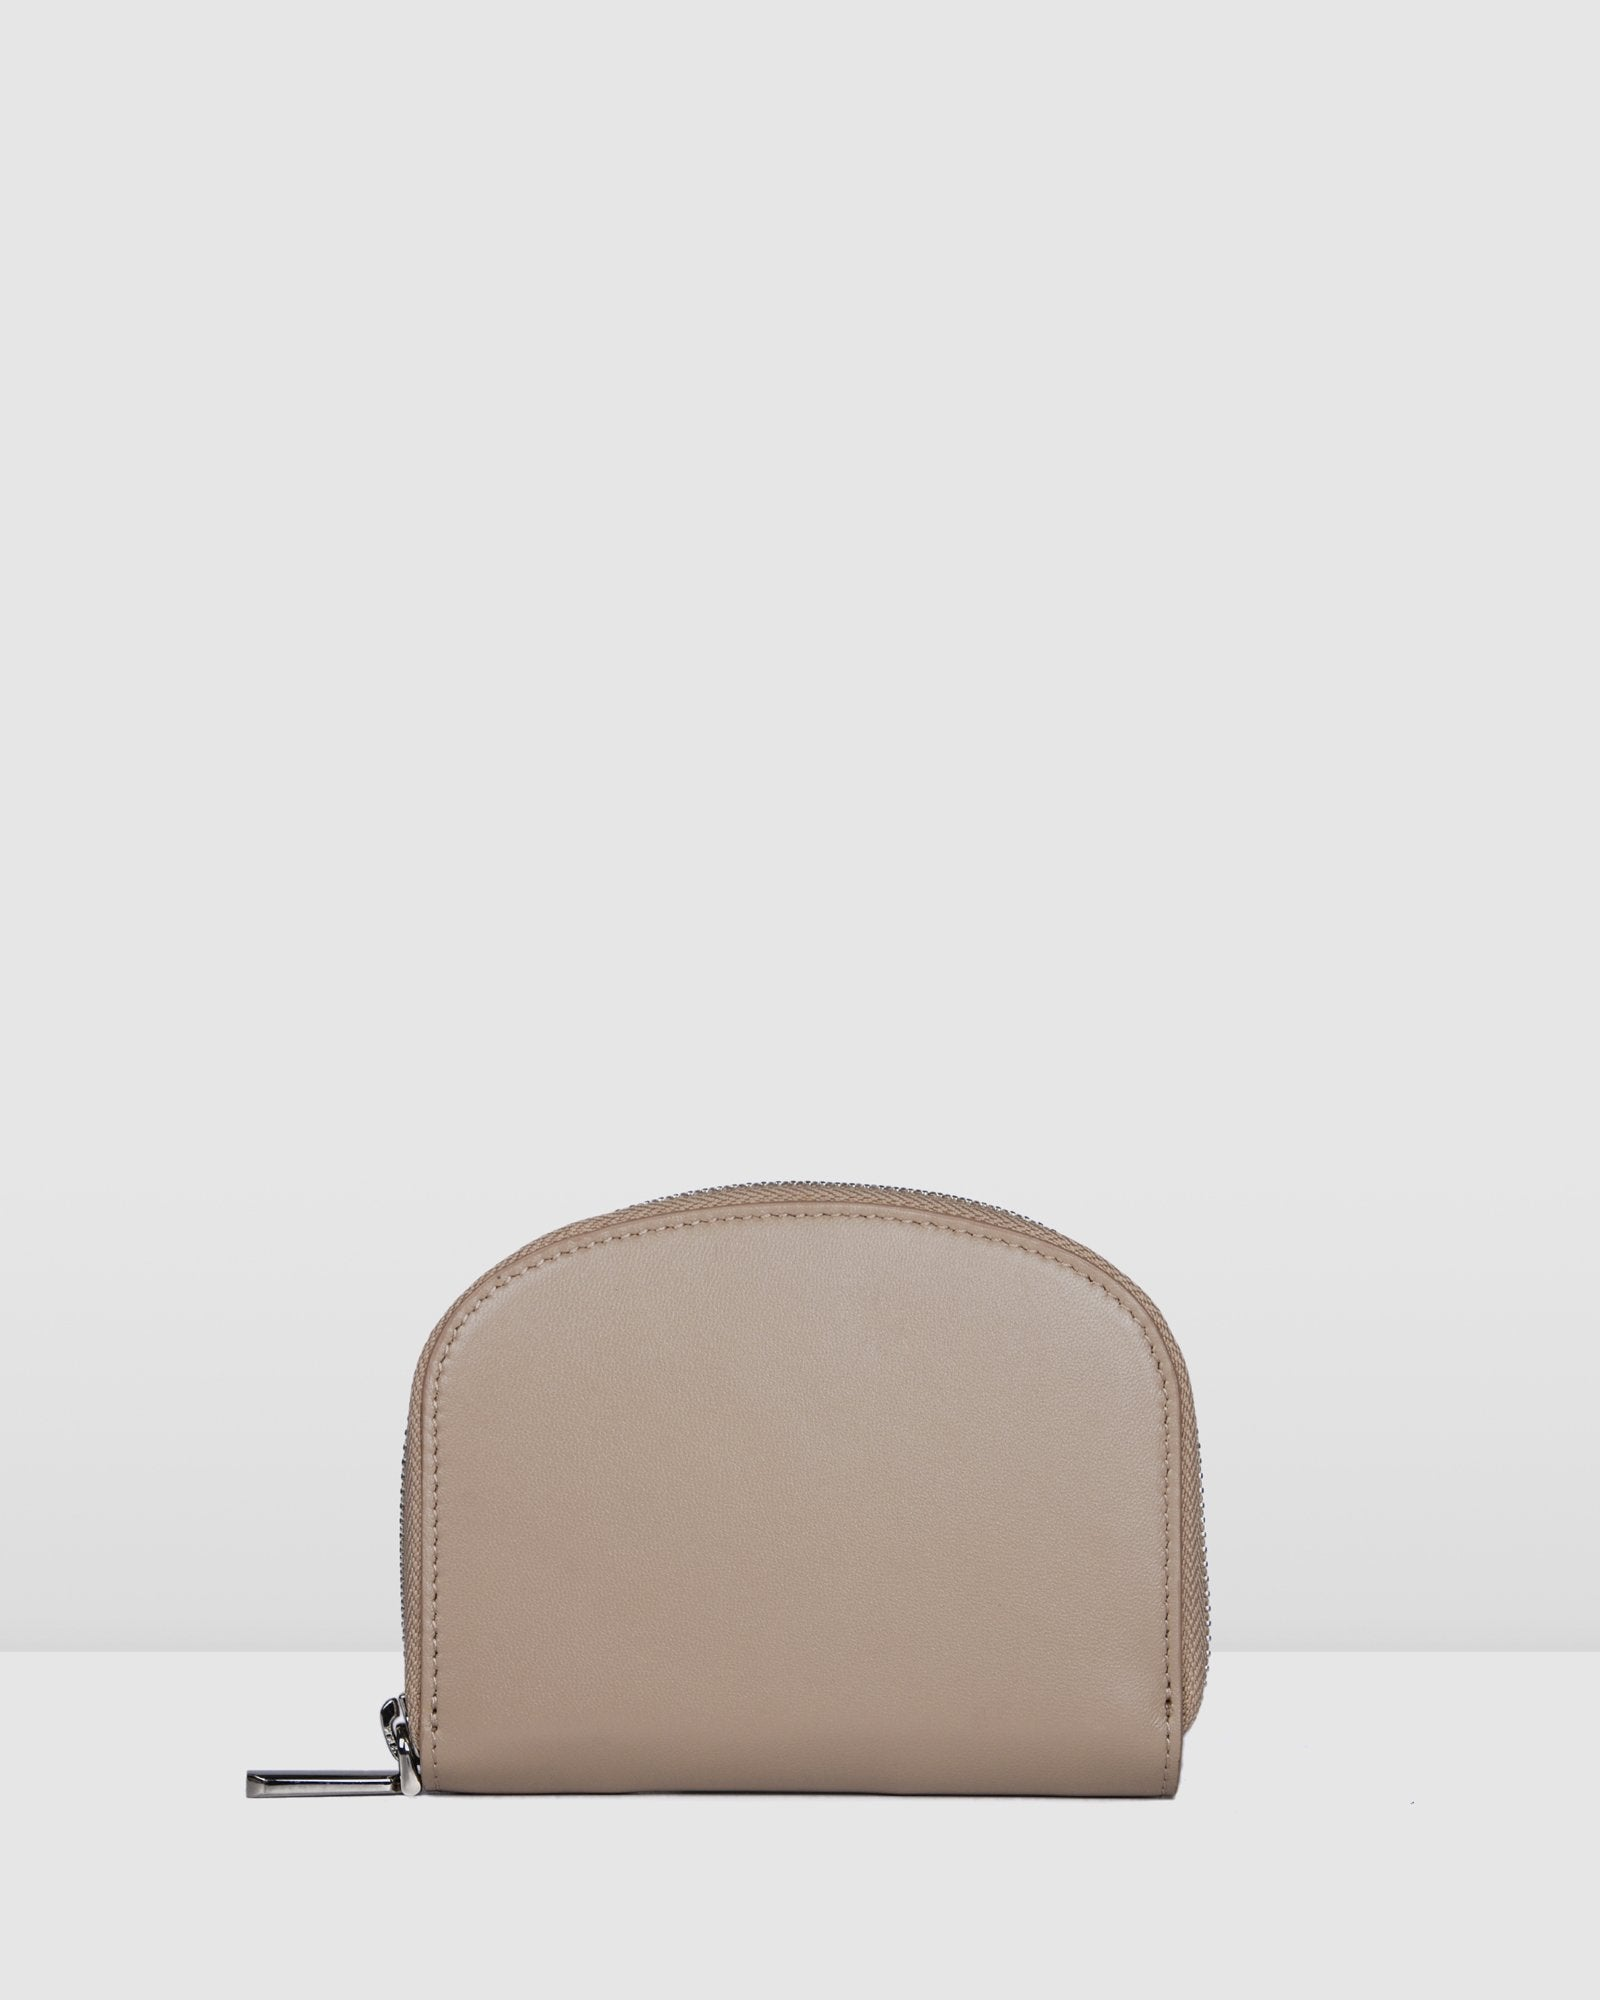 NORA WALLET BEIGE LEATHER